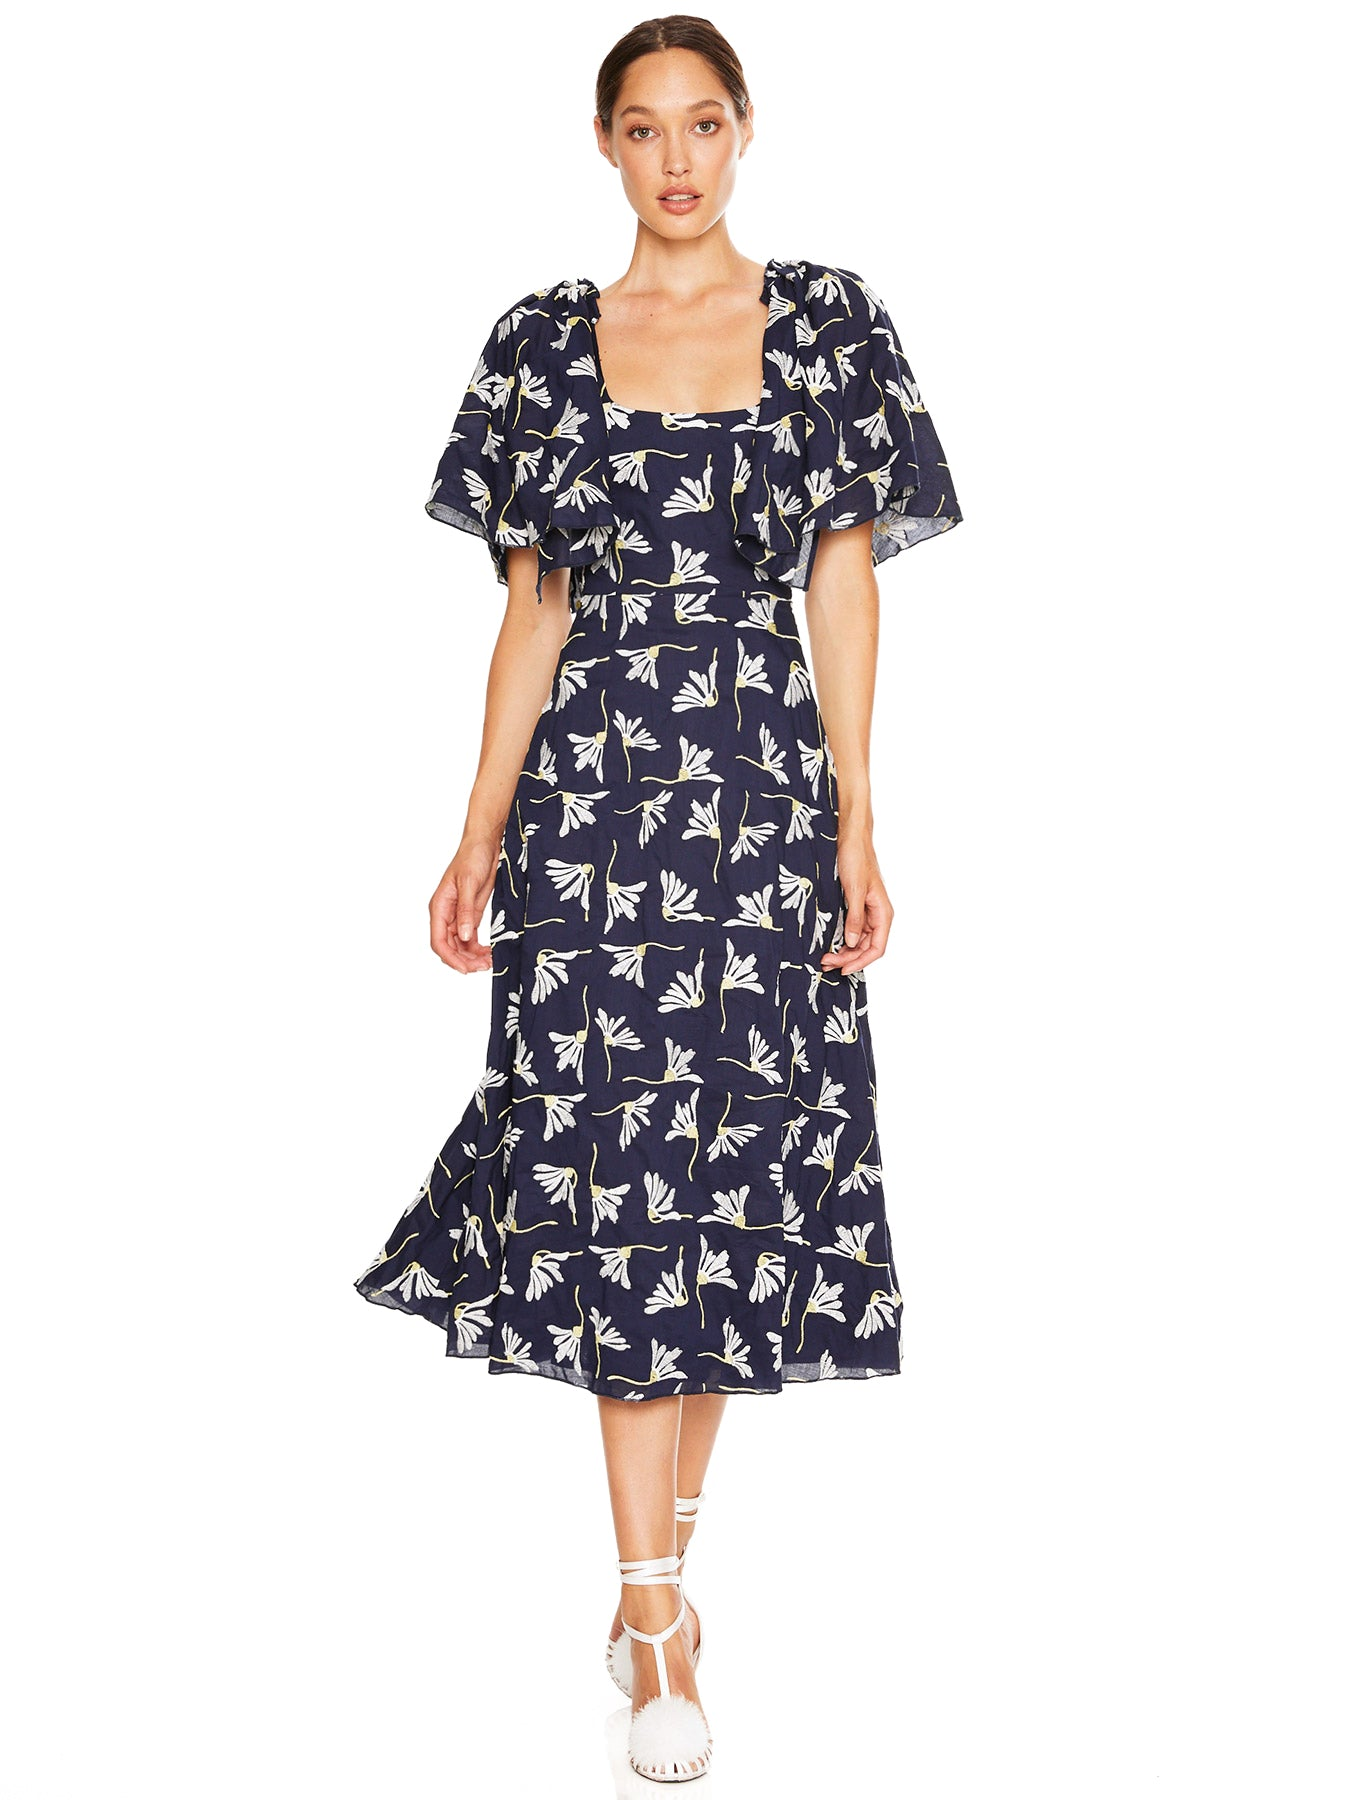 THE BIRDCAGE MIDI DRESS